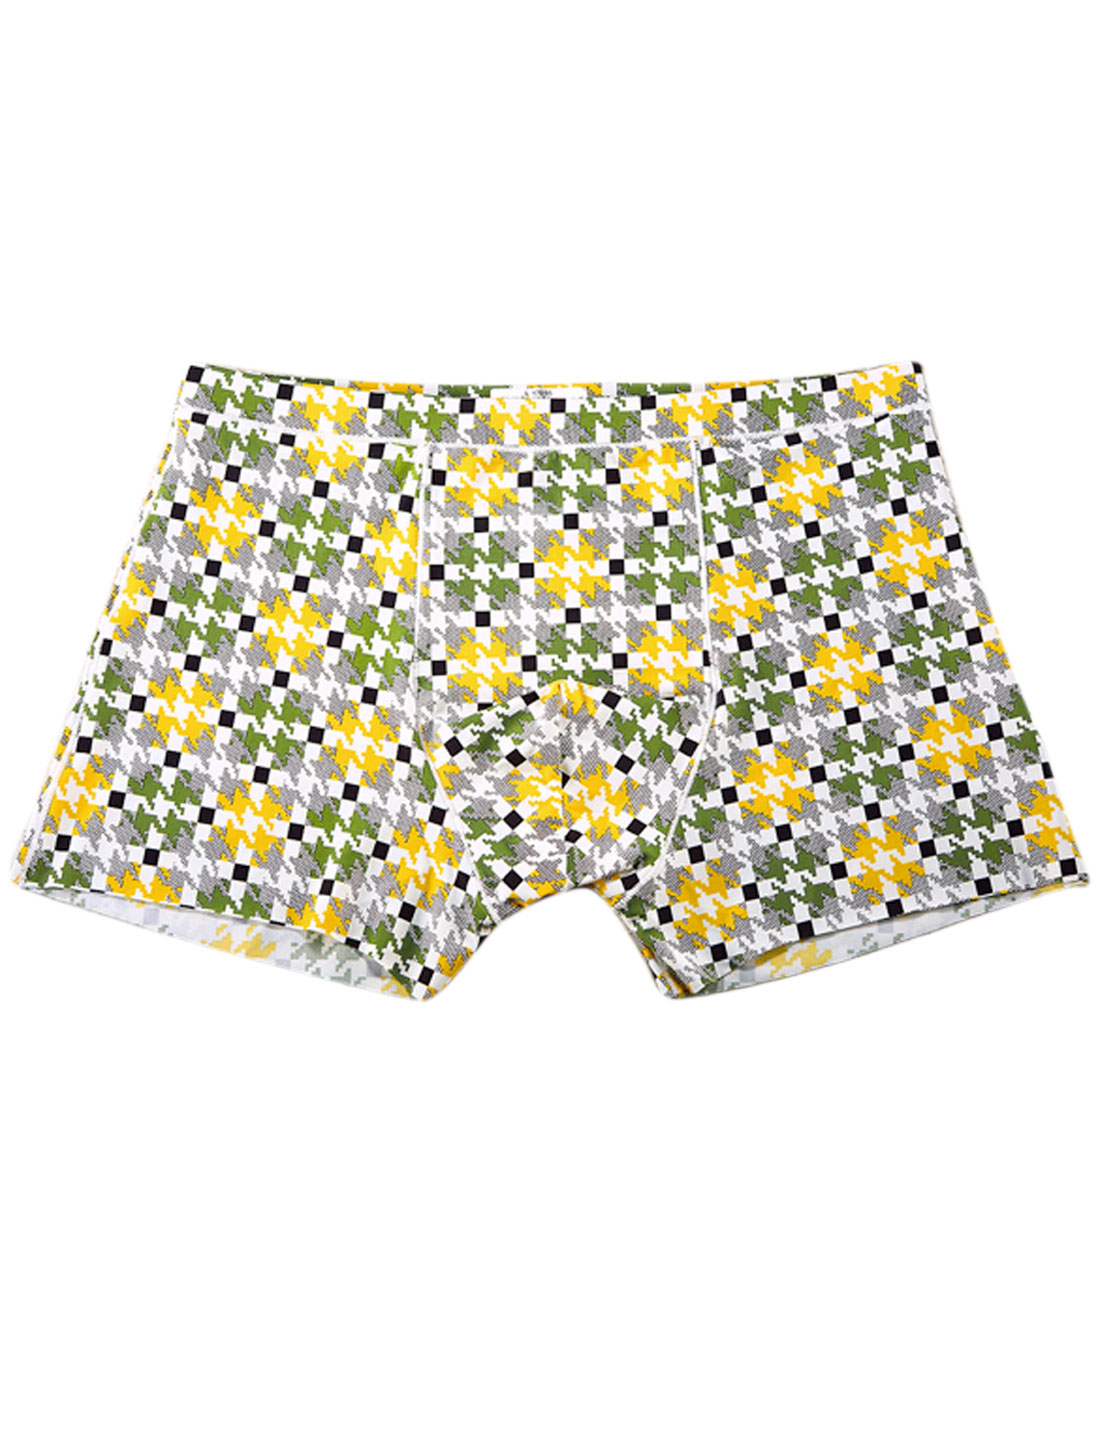 Men Houndstooth Pattern Stretchy Boxer Brief Yellow Moss Black W30